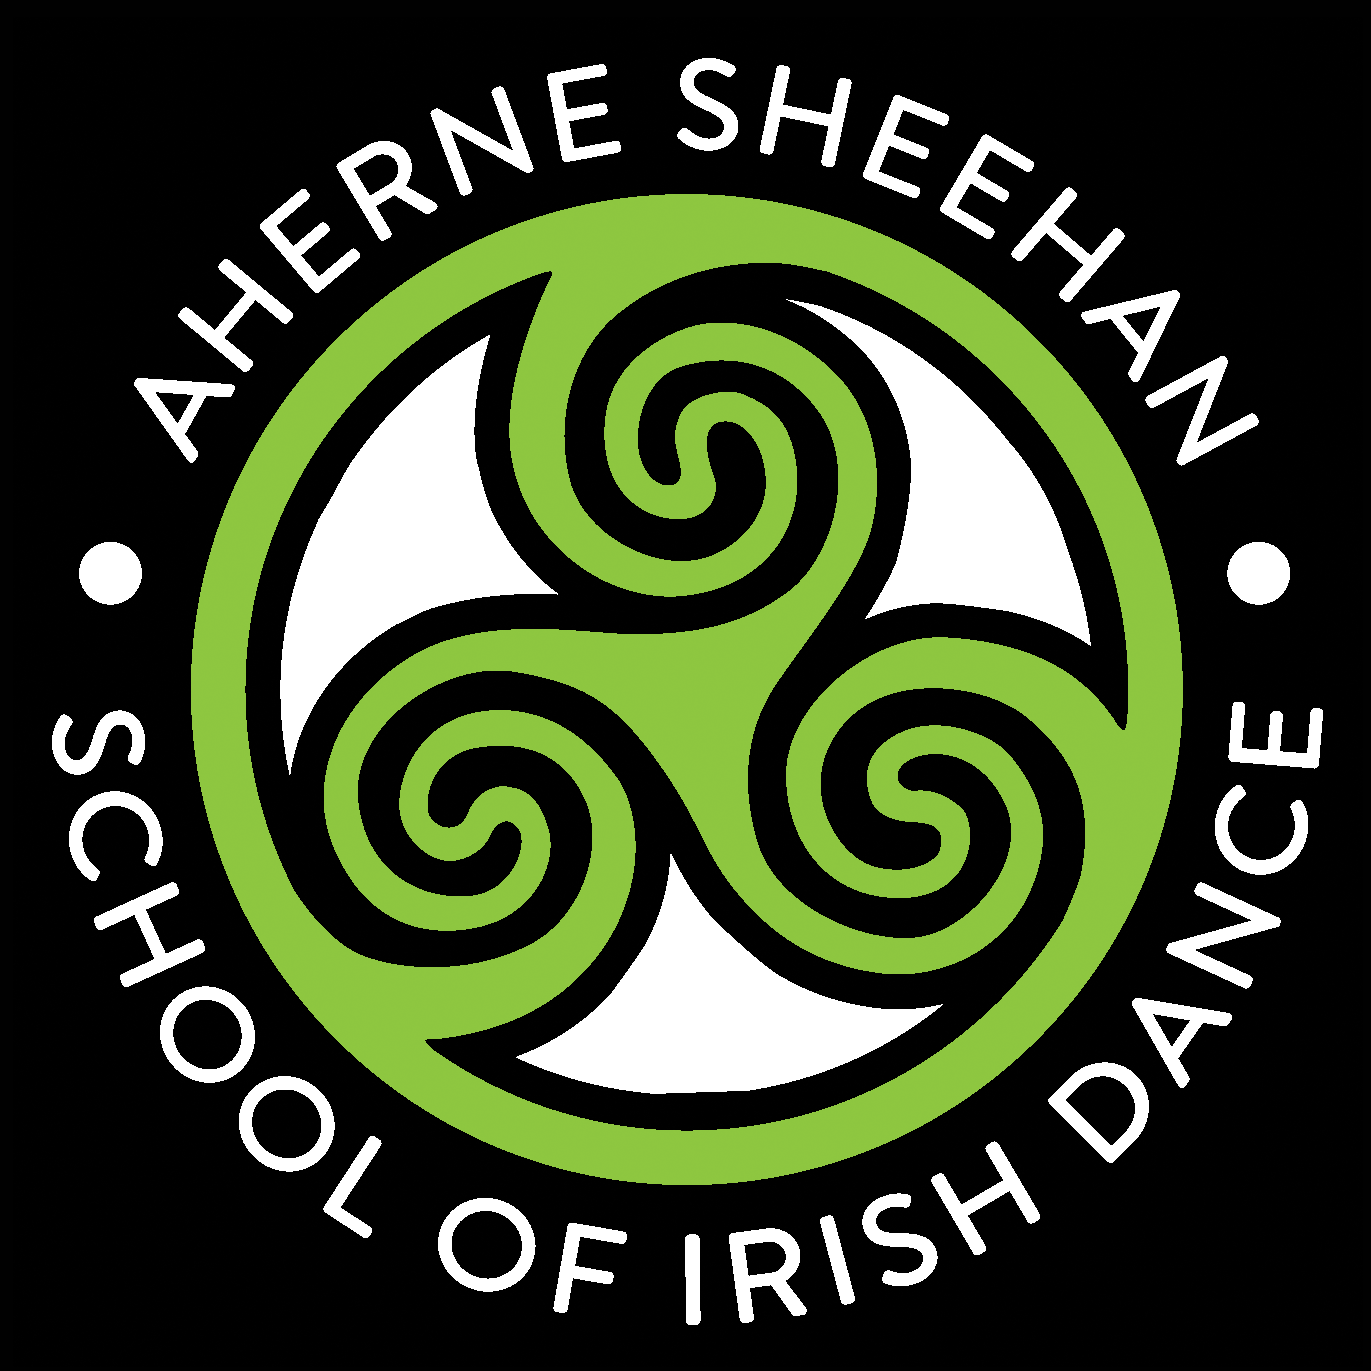 Aherne Sheehan School of Irish Dance